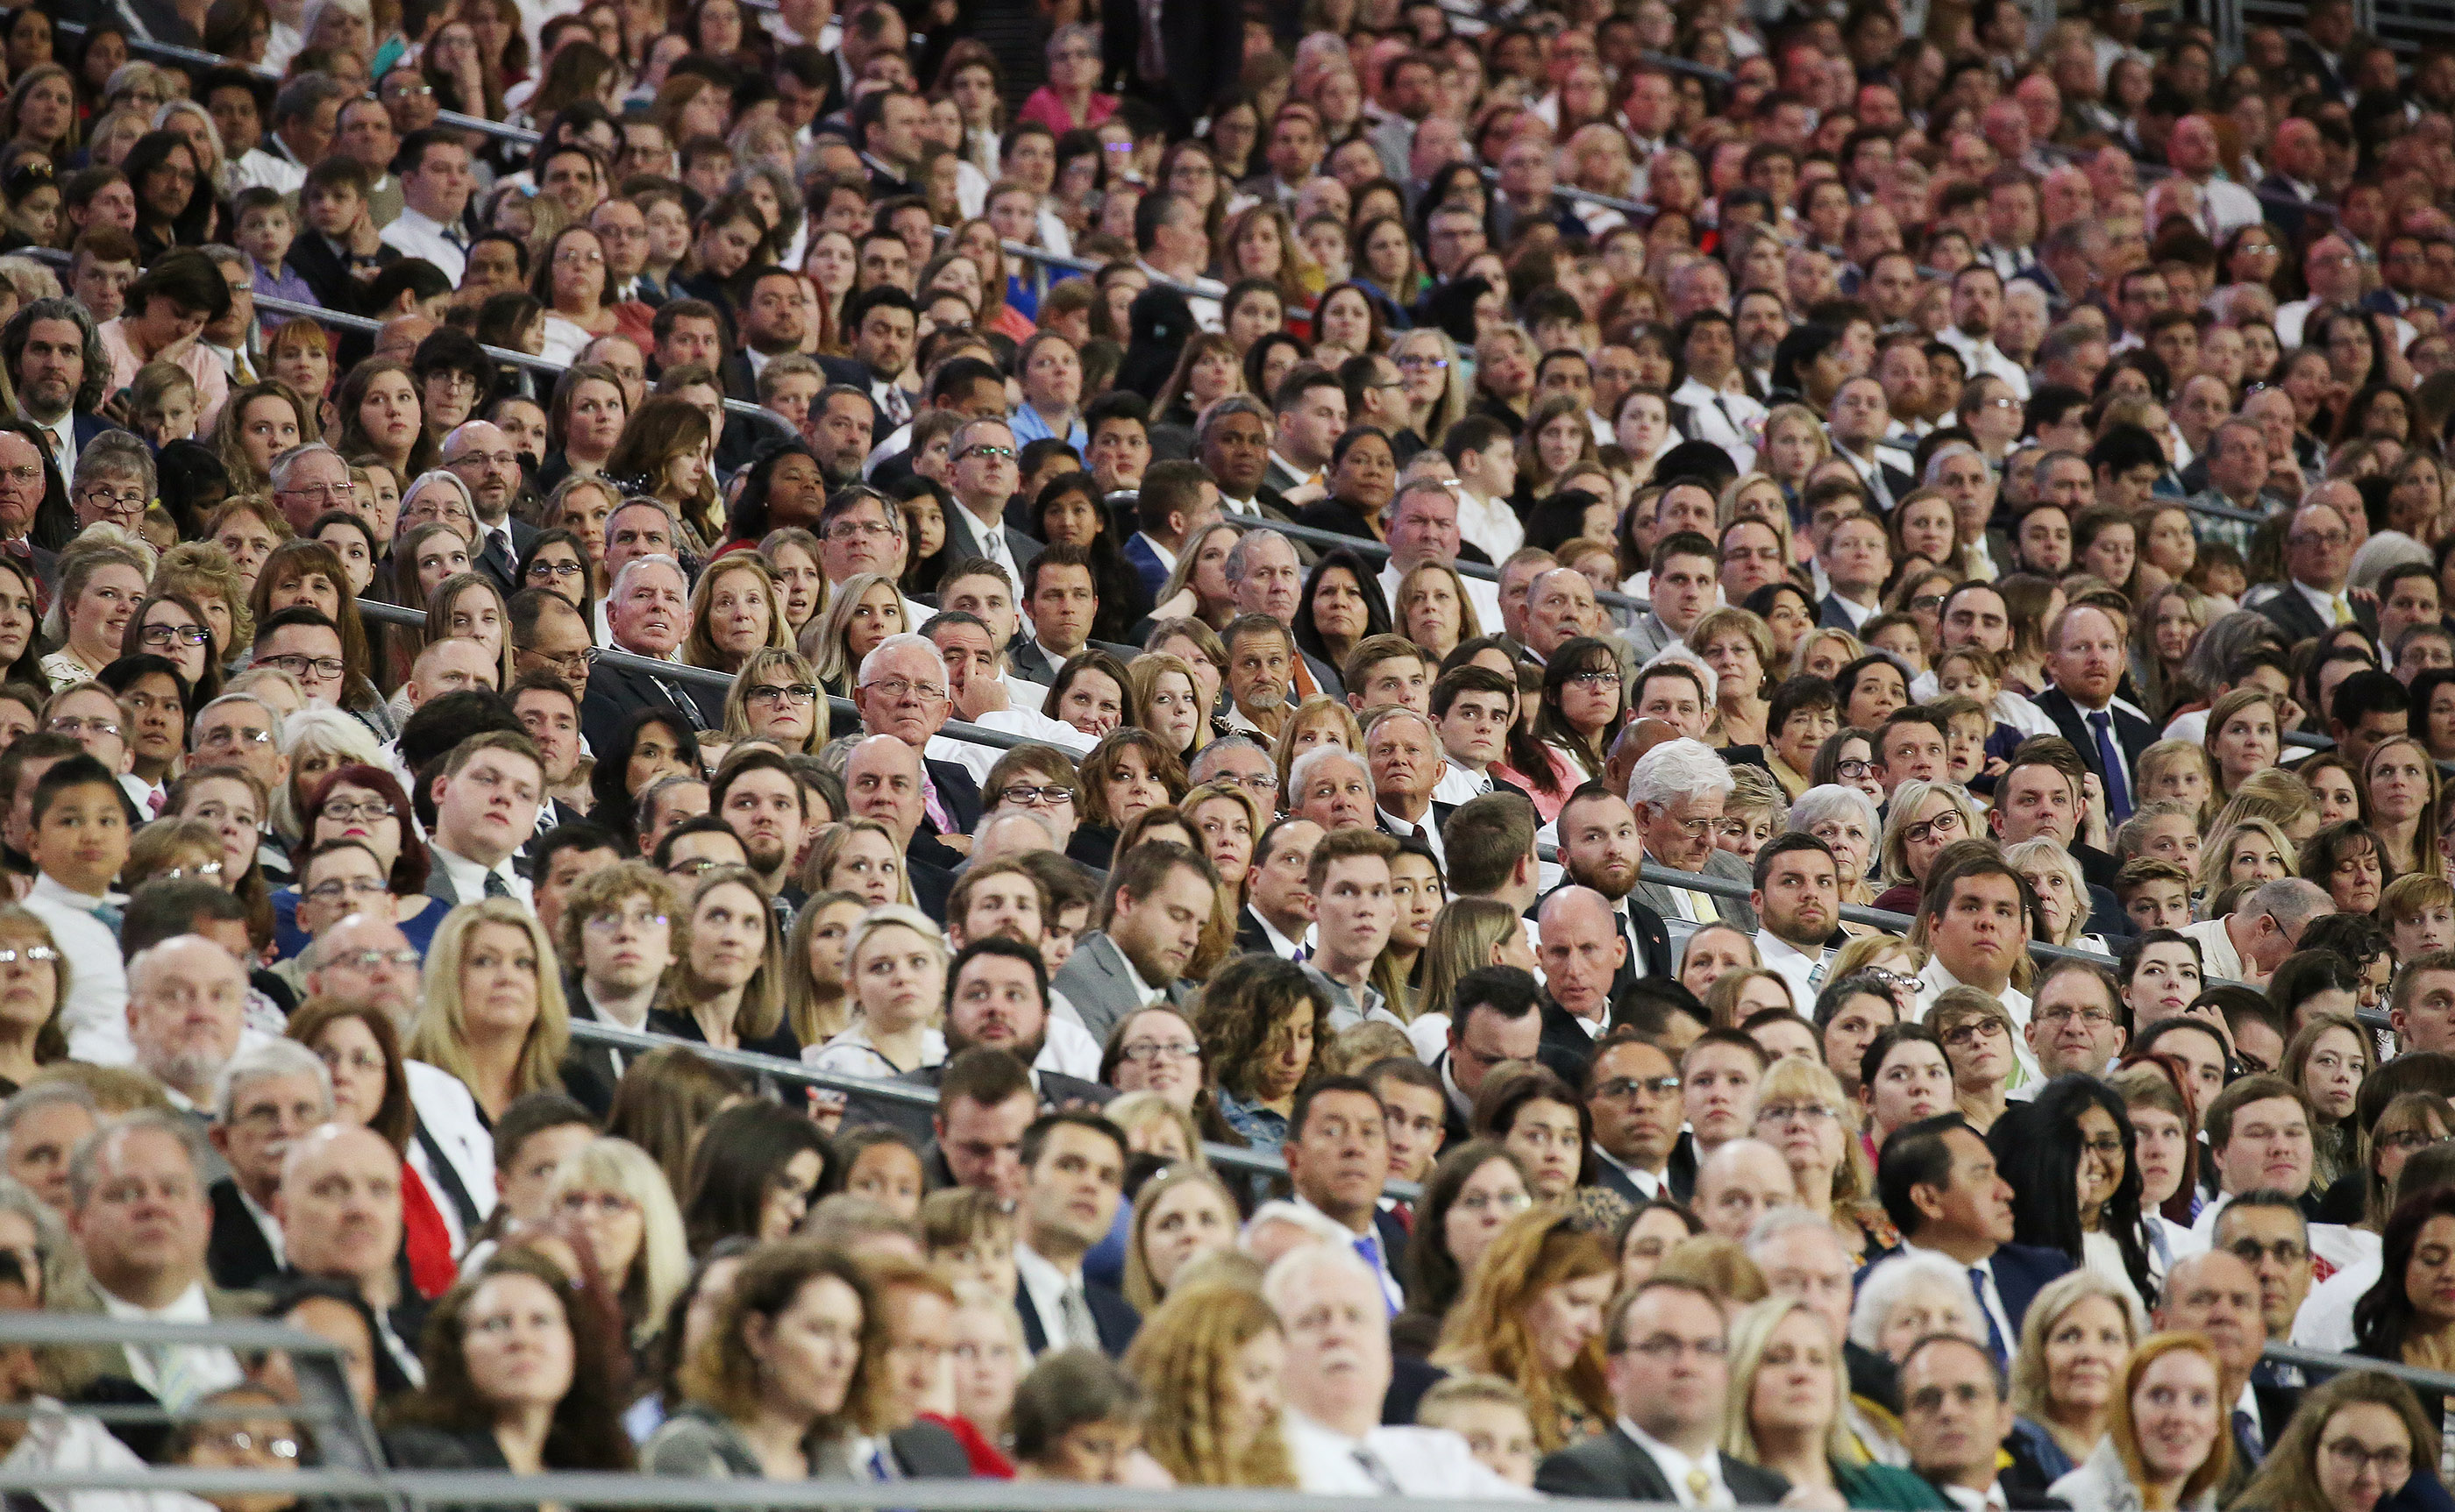 Attendees listen as President Russell M. Nelson of The Church of Jesus Christ of Latter-day Saints speaks during a devotional at the State Farm Stadium in Phoenix on Sunday, Feb. 10, 2019.